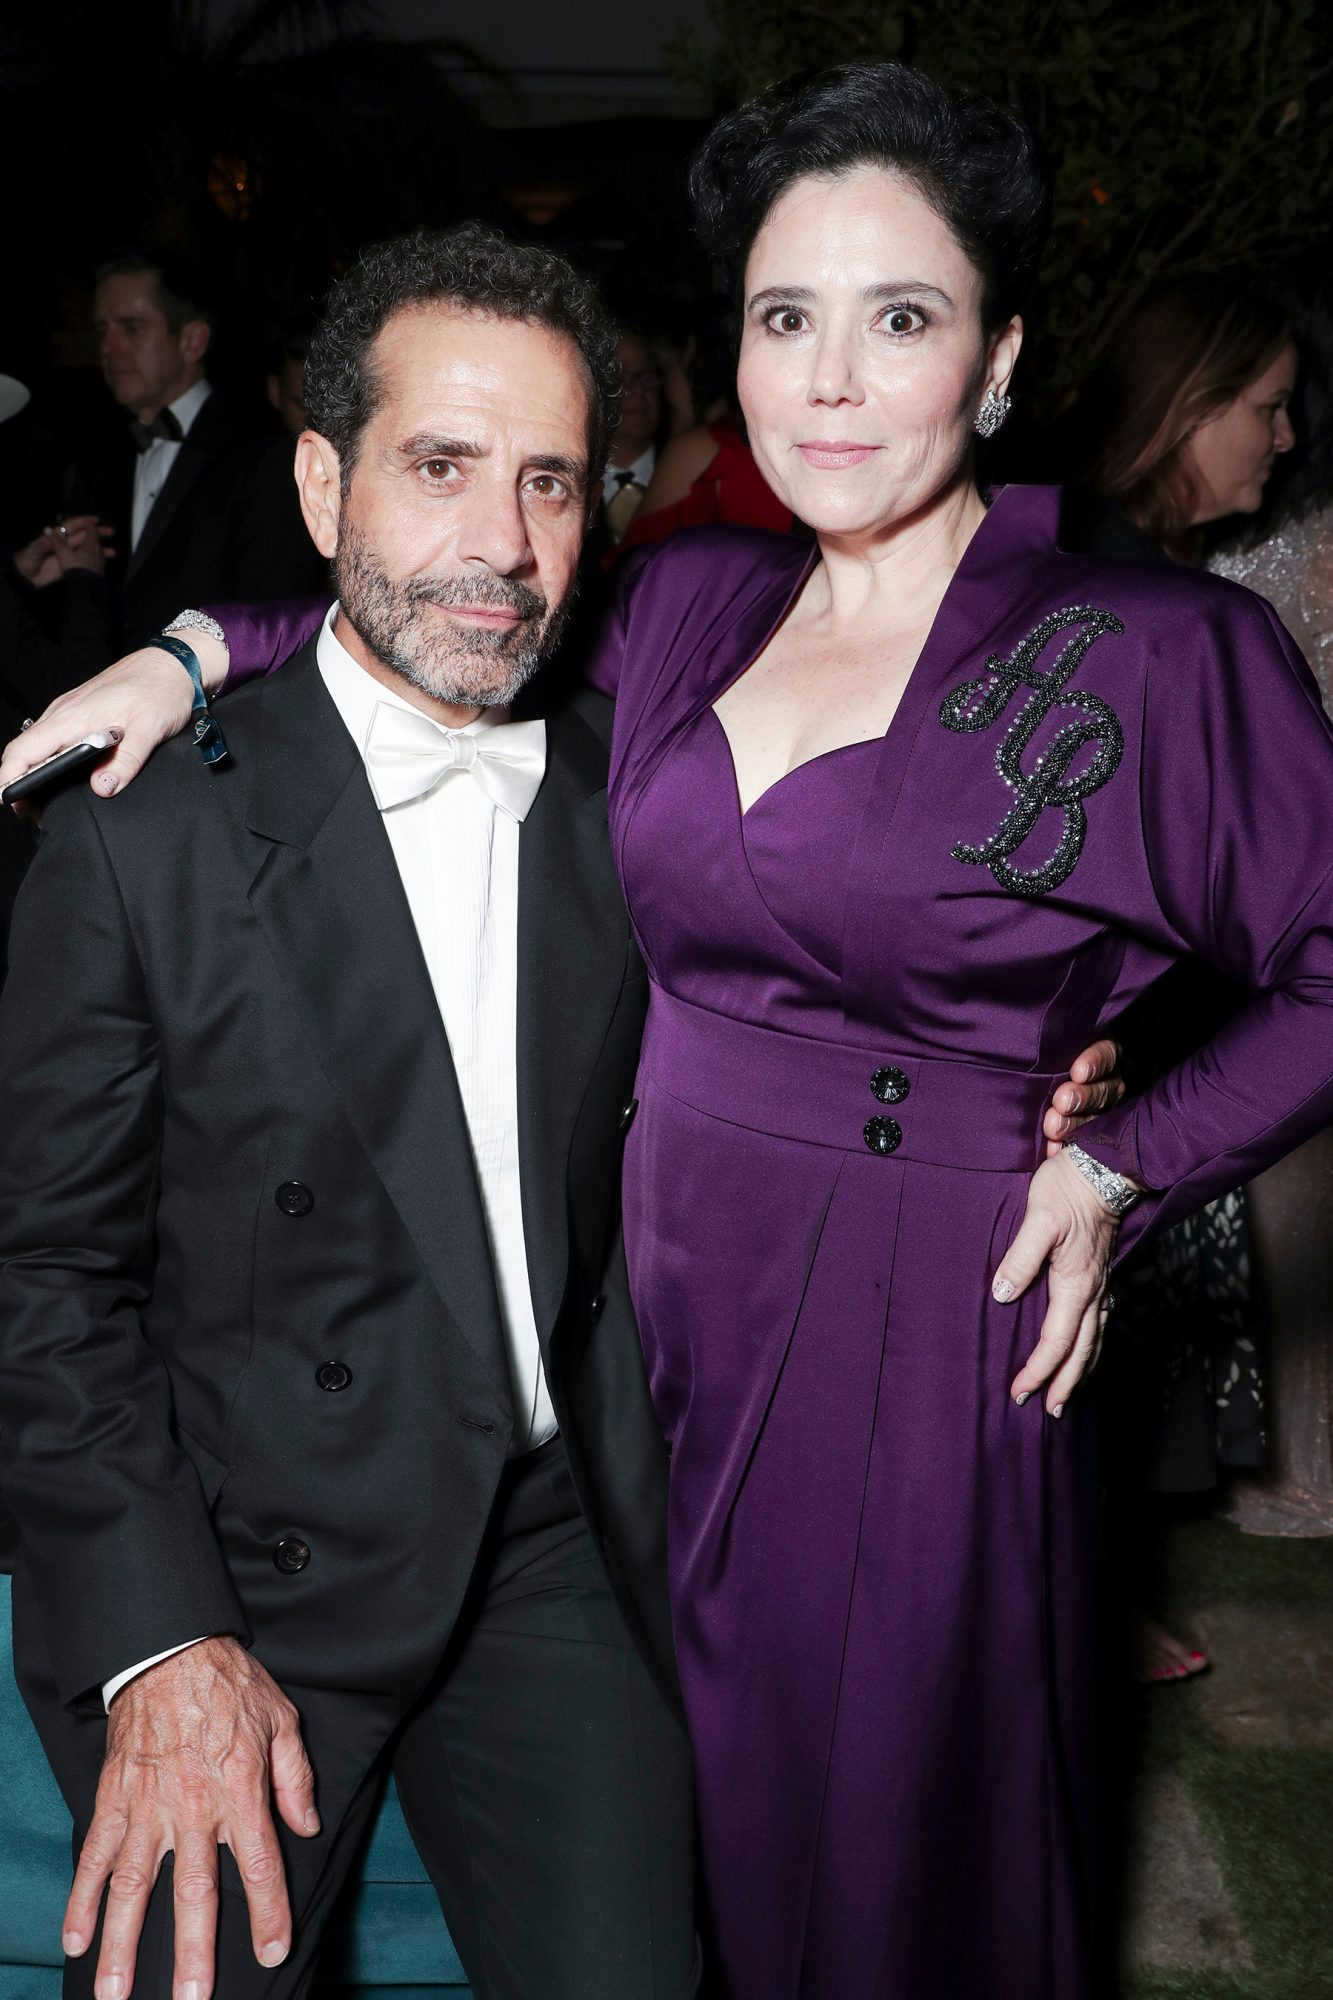 Tony Shalhoub and Alex Borstein